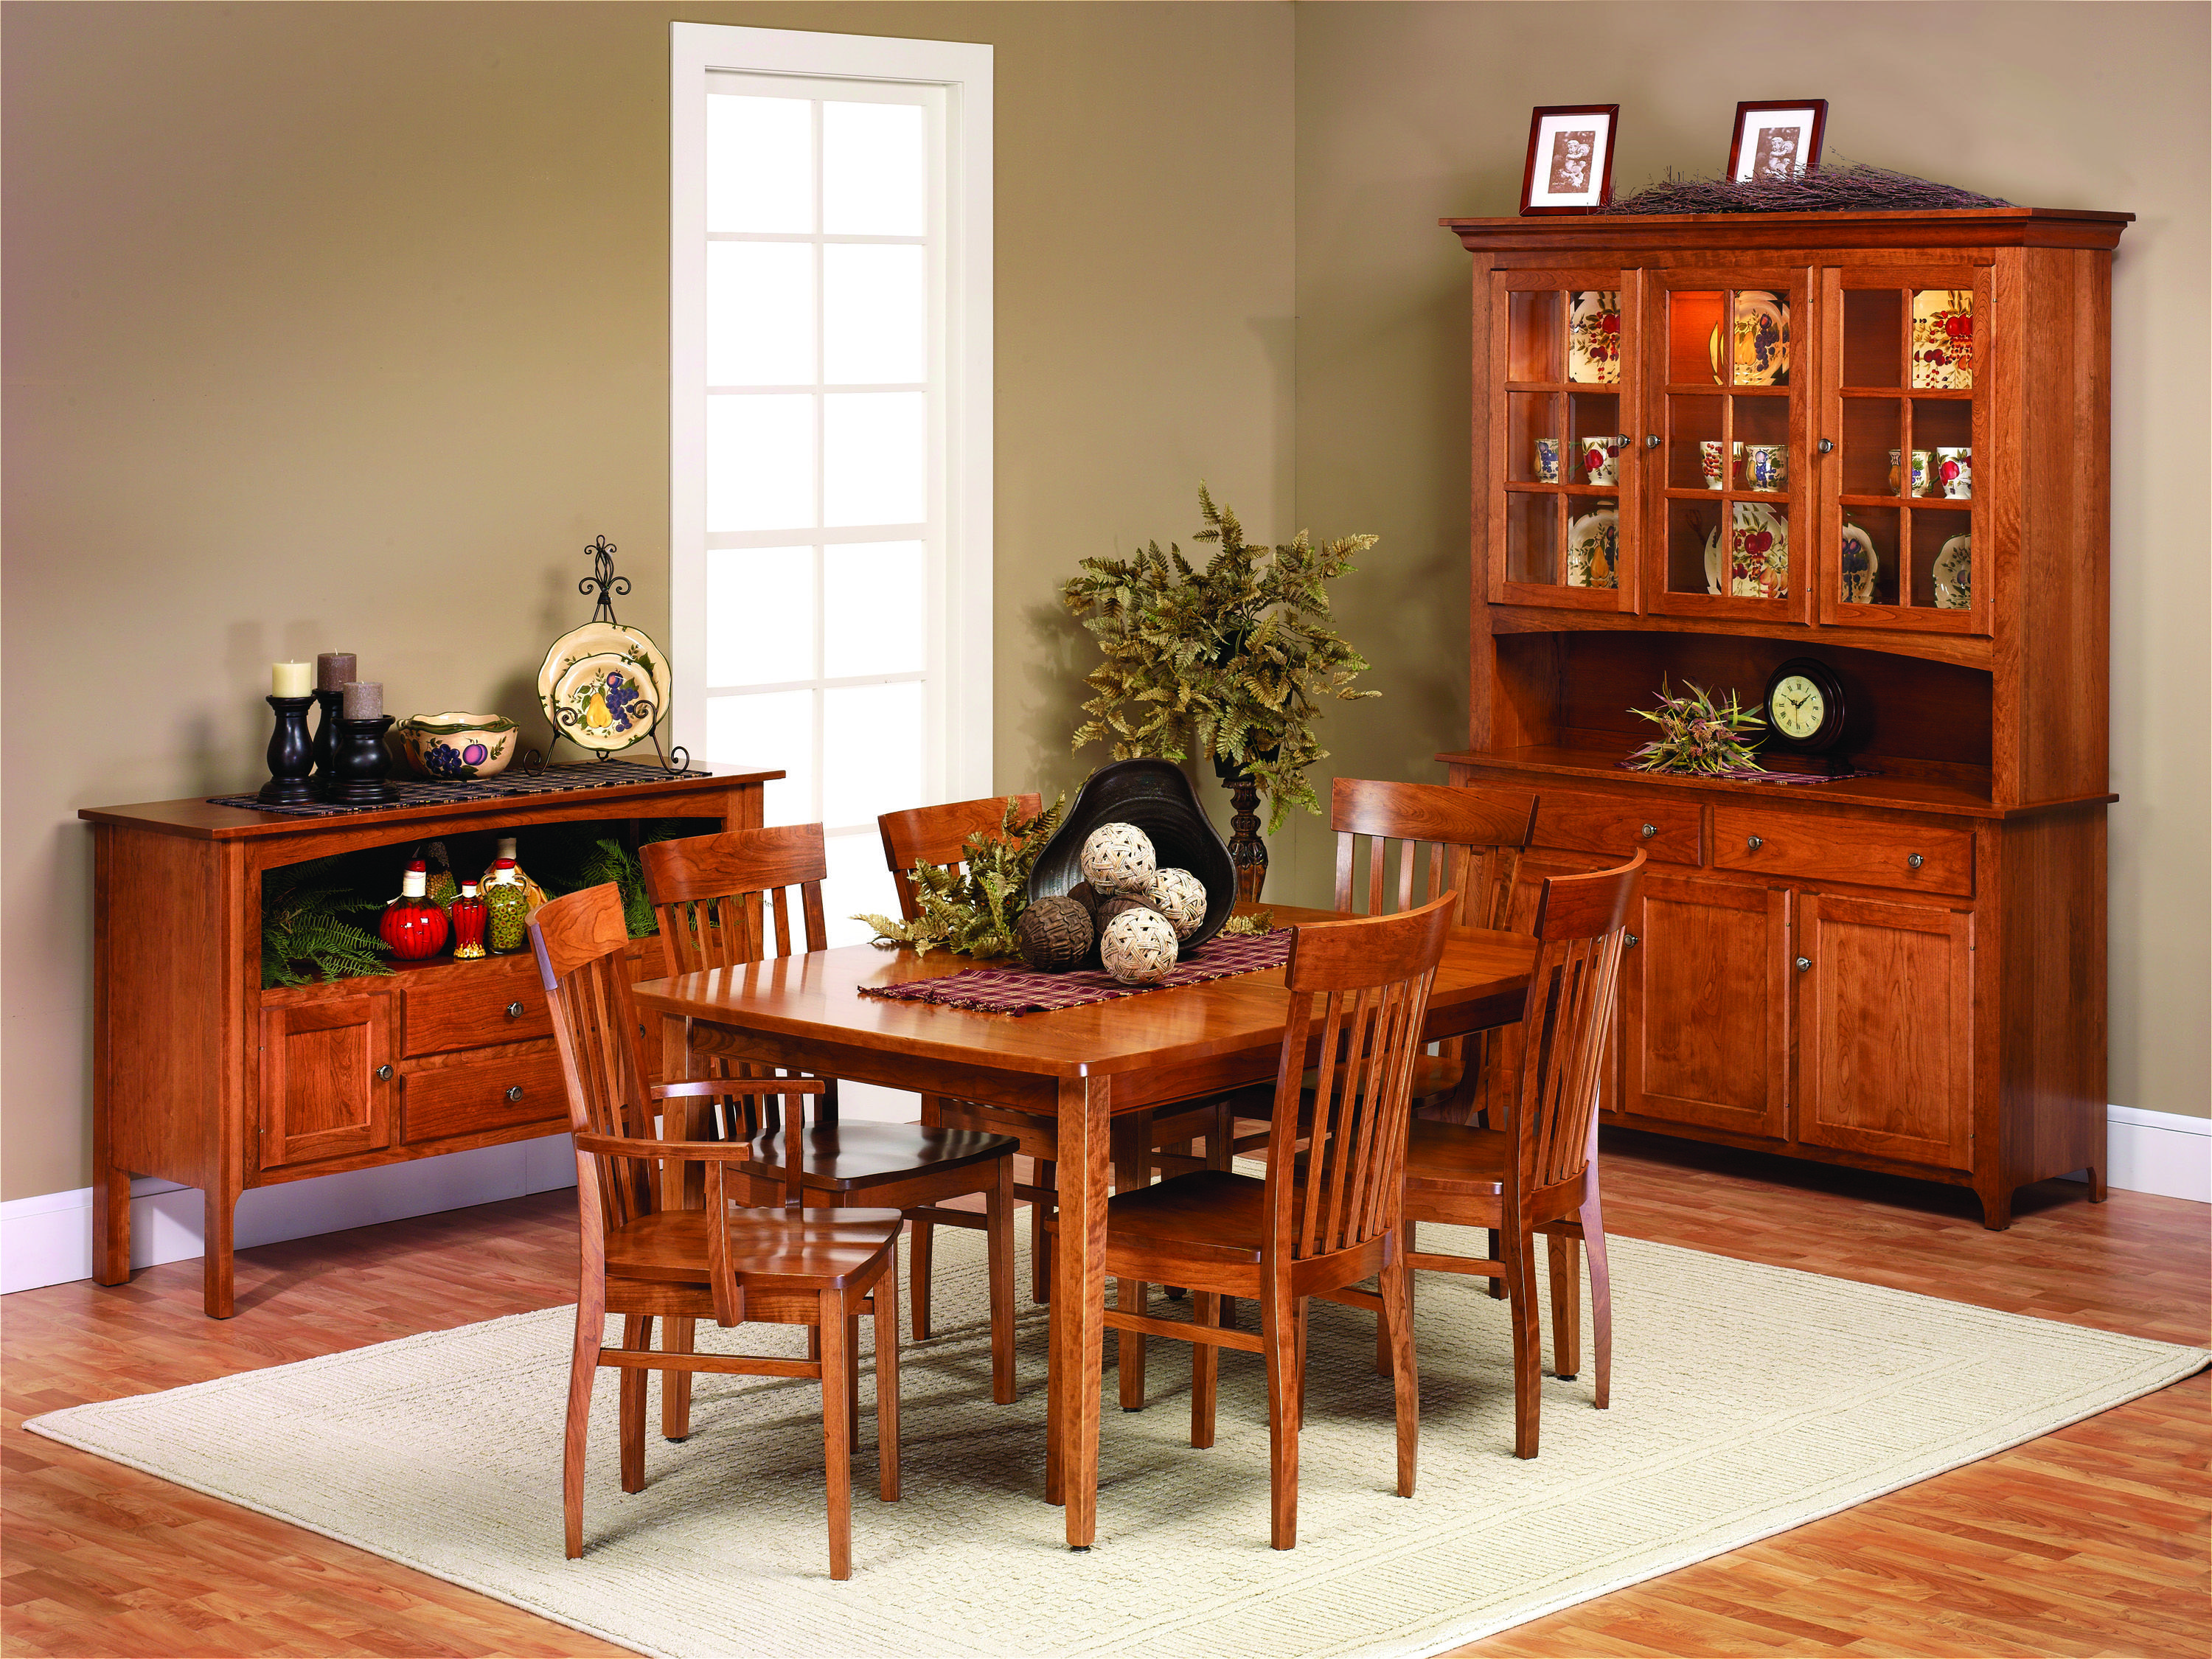 Carlisle Dining Collection Solid Hardwood Shown In Cherry Available In Variety Of Woods Stains Kitchen Dining Furniture Furniture Home Furniture